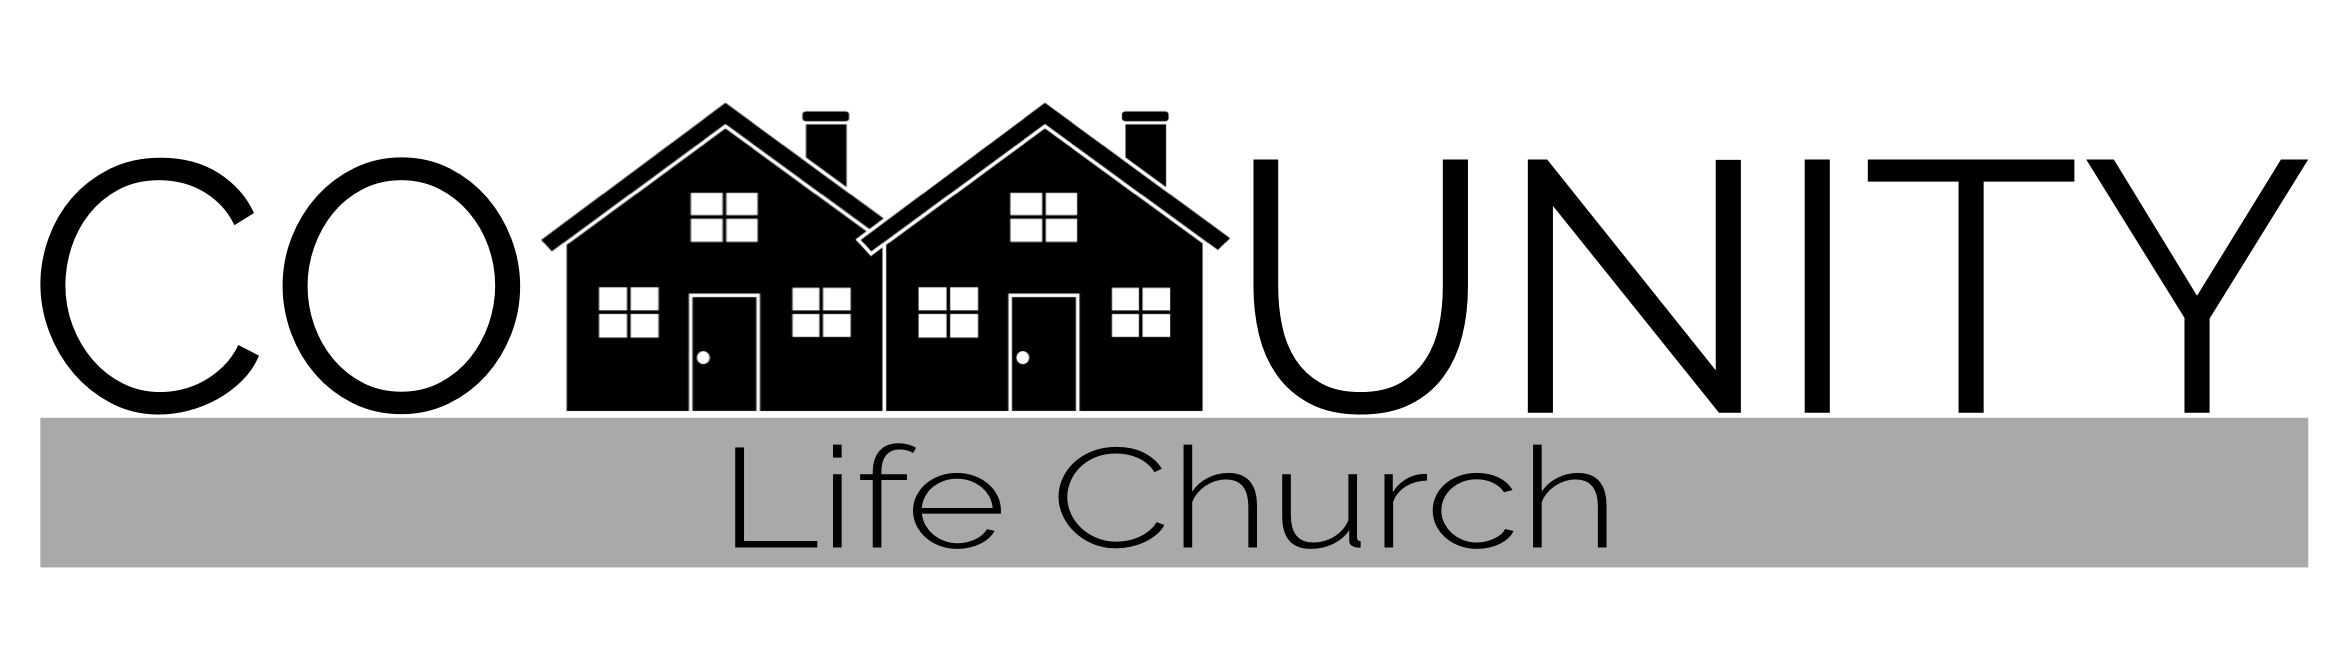 Community-Life Church